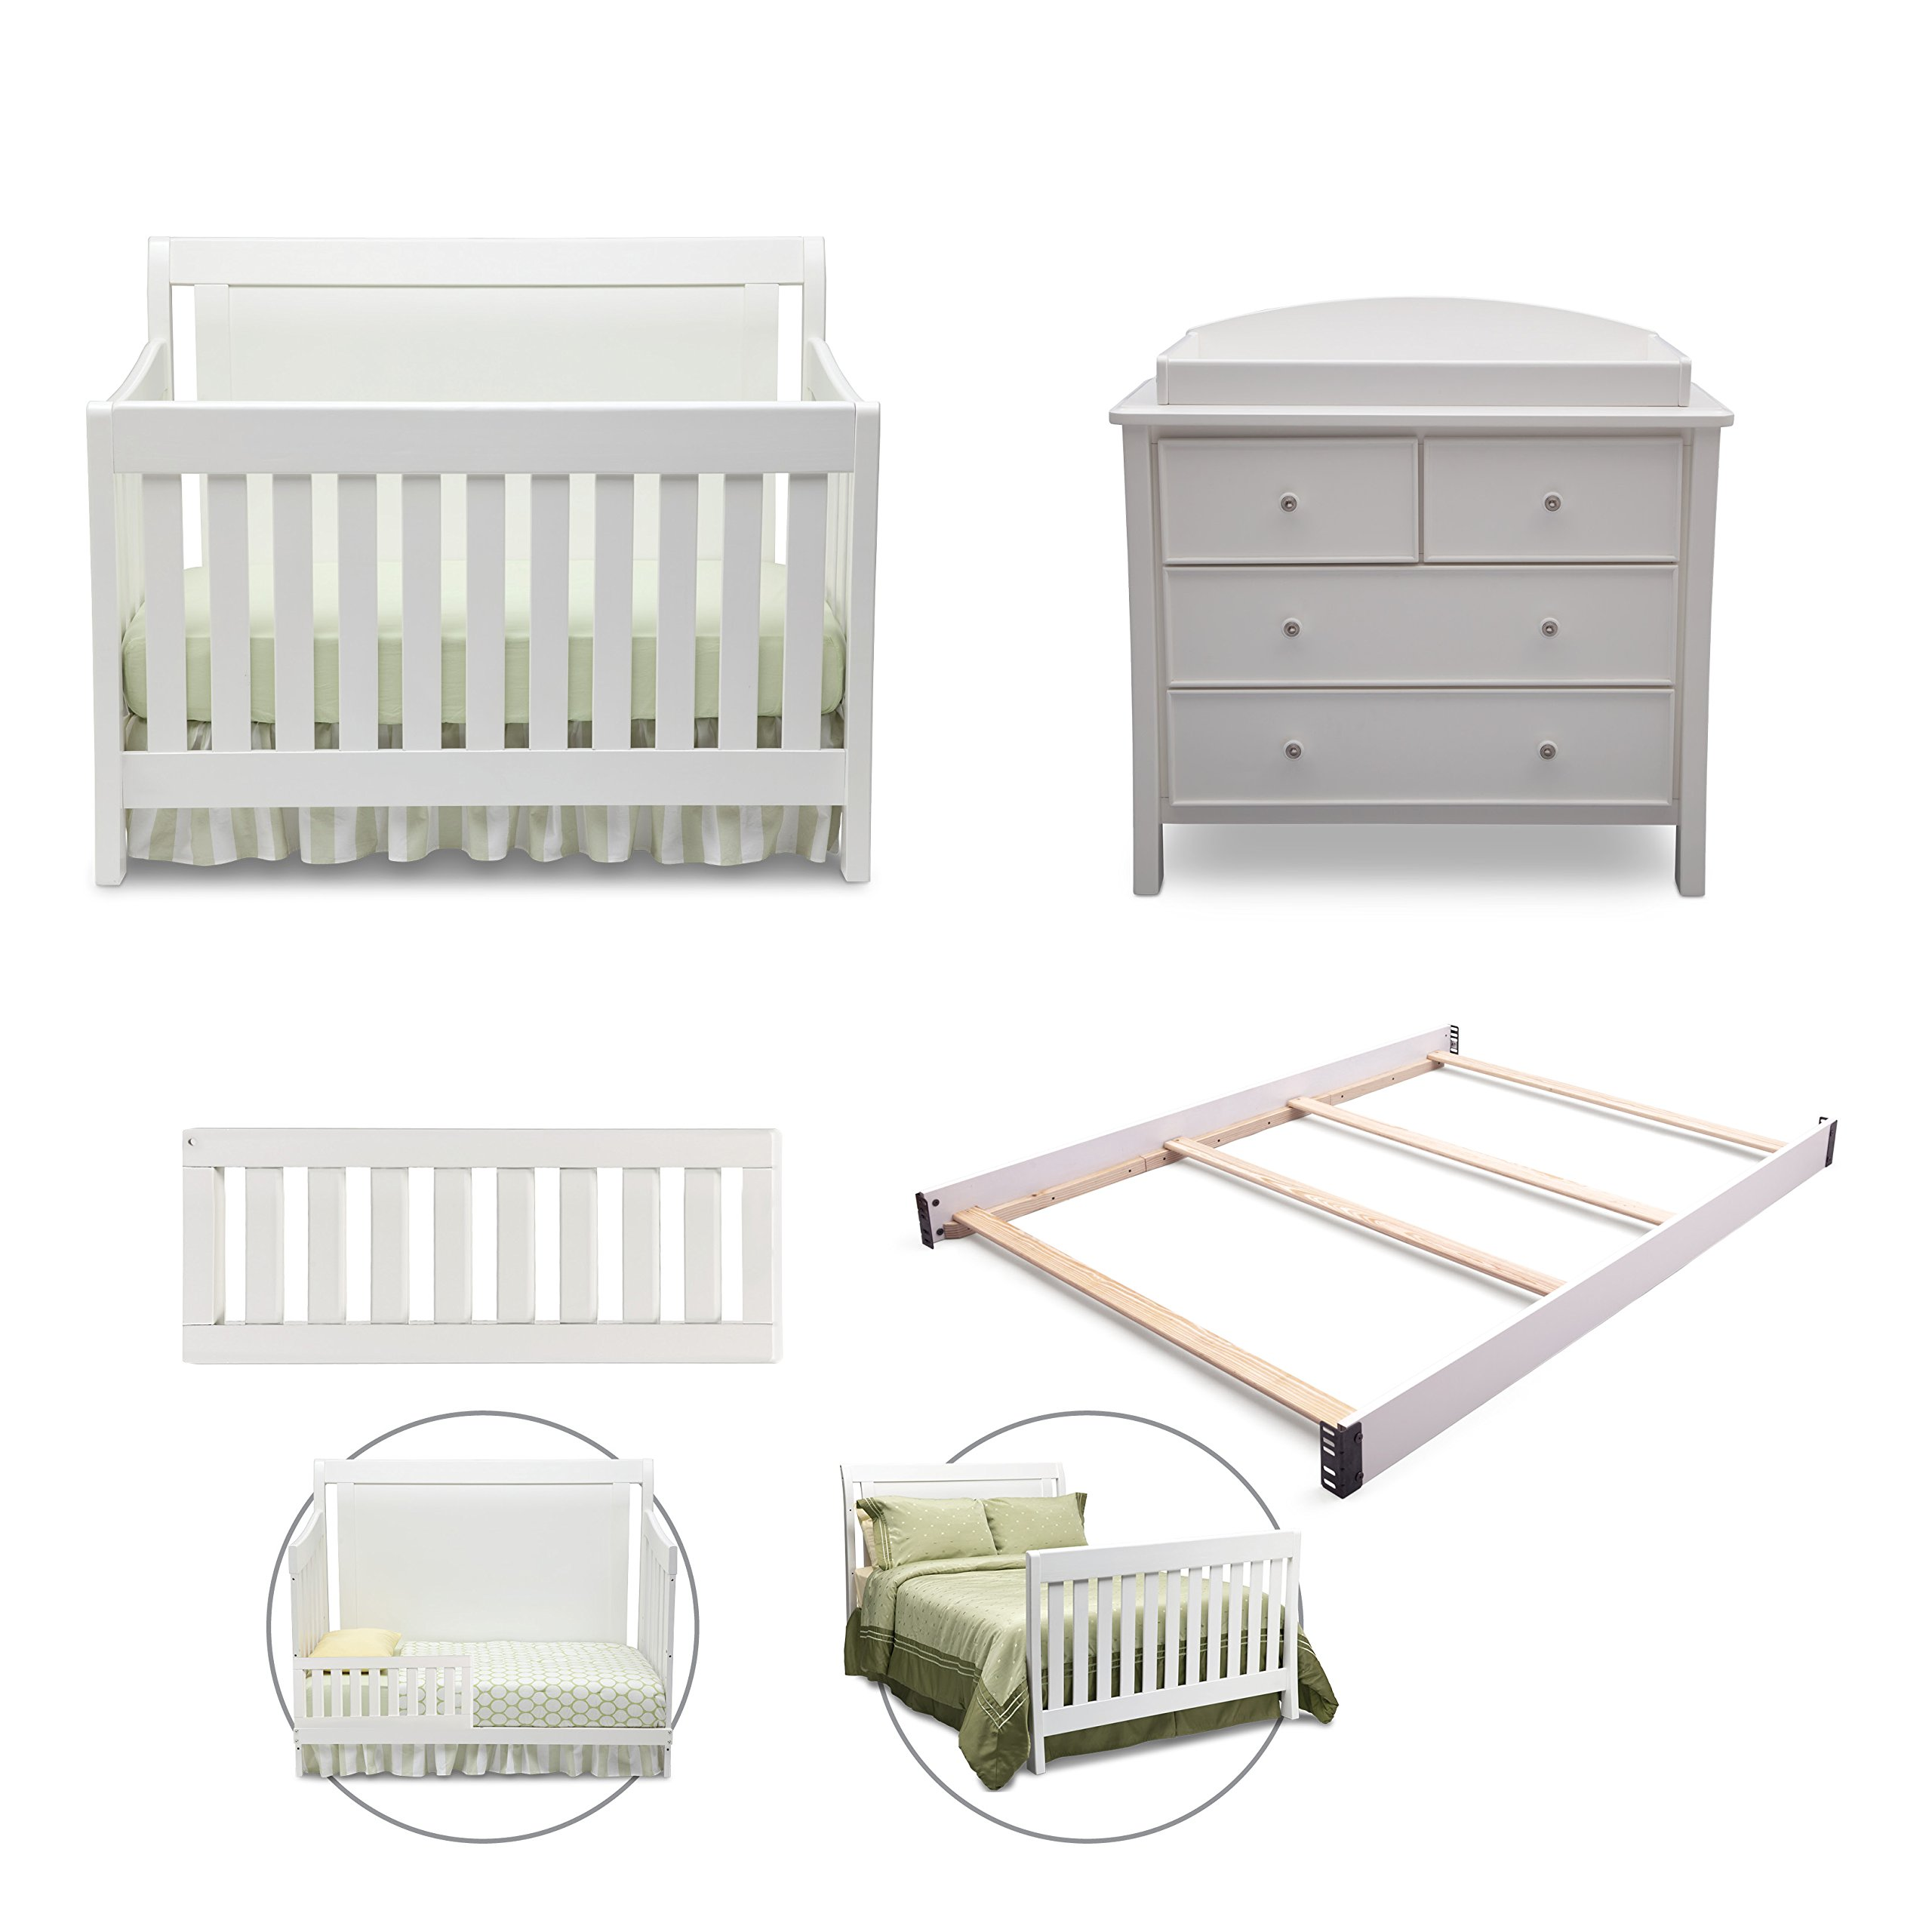 Simmons Kids Broadway 5-Piece White Ambiance Nursery Furniture Set Including Crib, 4 Drawer Dresser, Changing Top, Toddler Full Size Bed Rails & Guardrails